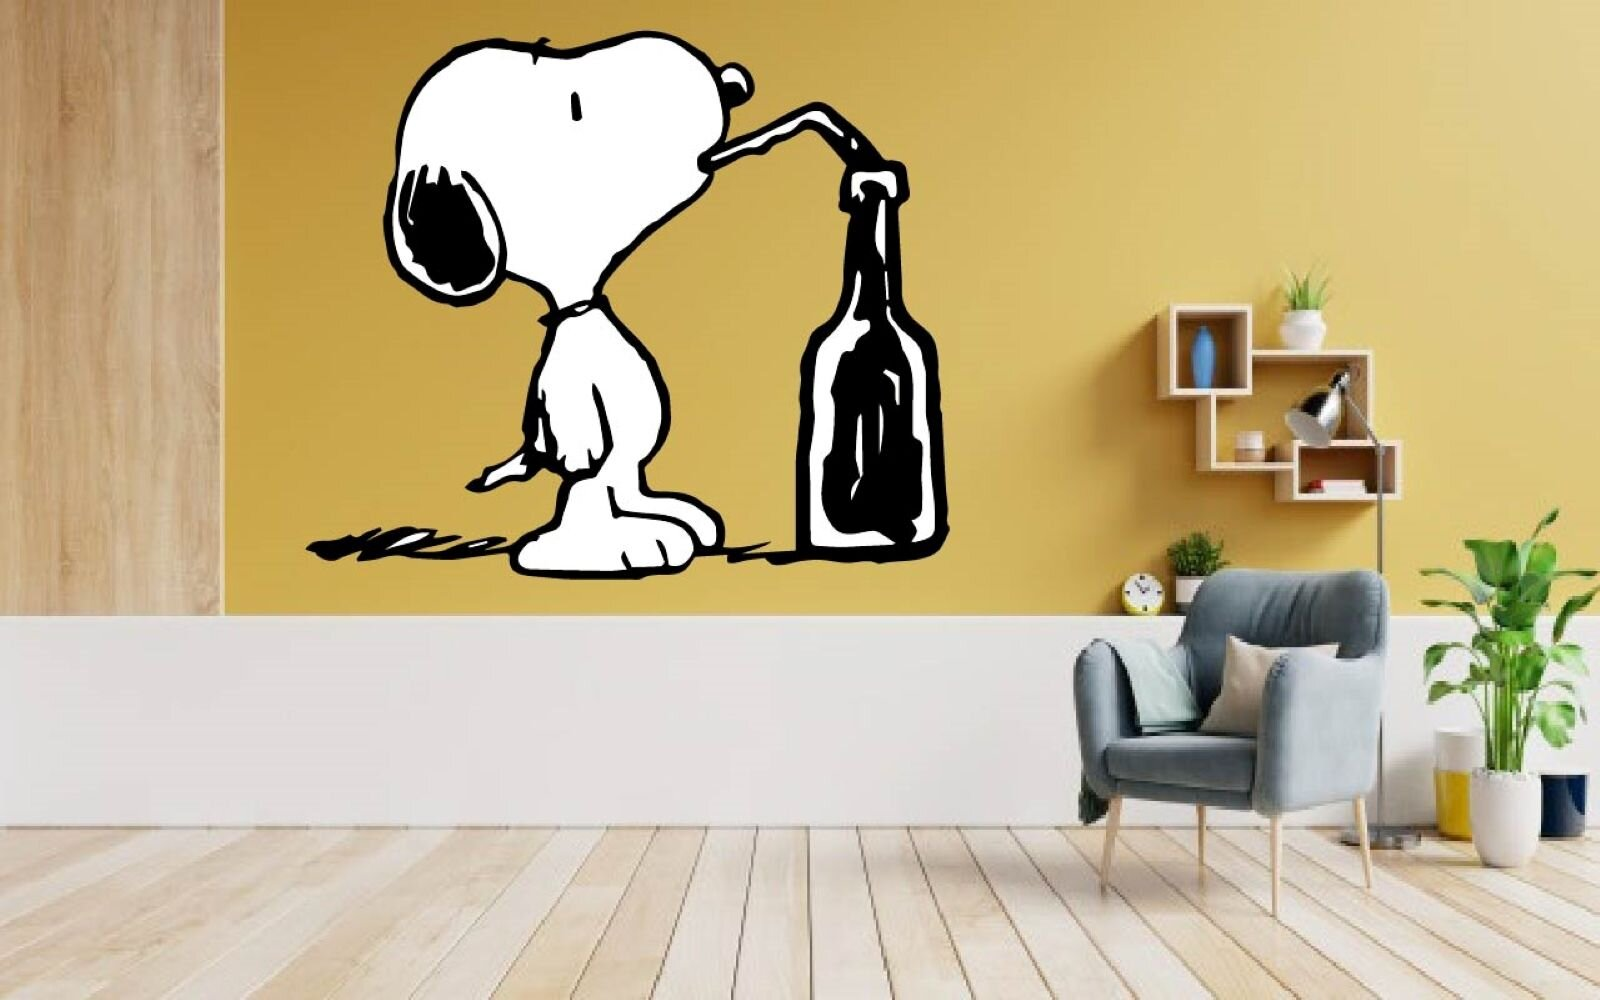 Design With Vinyl Snoopy Drinking Dog Peanuts Vinyl Wall Decal Wayfair